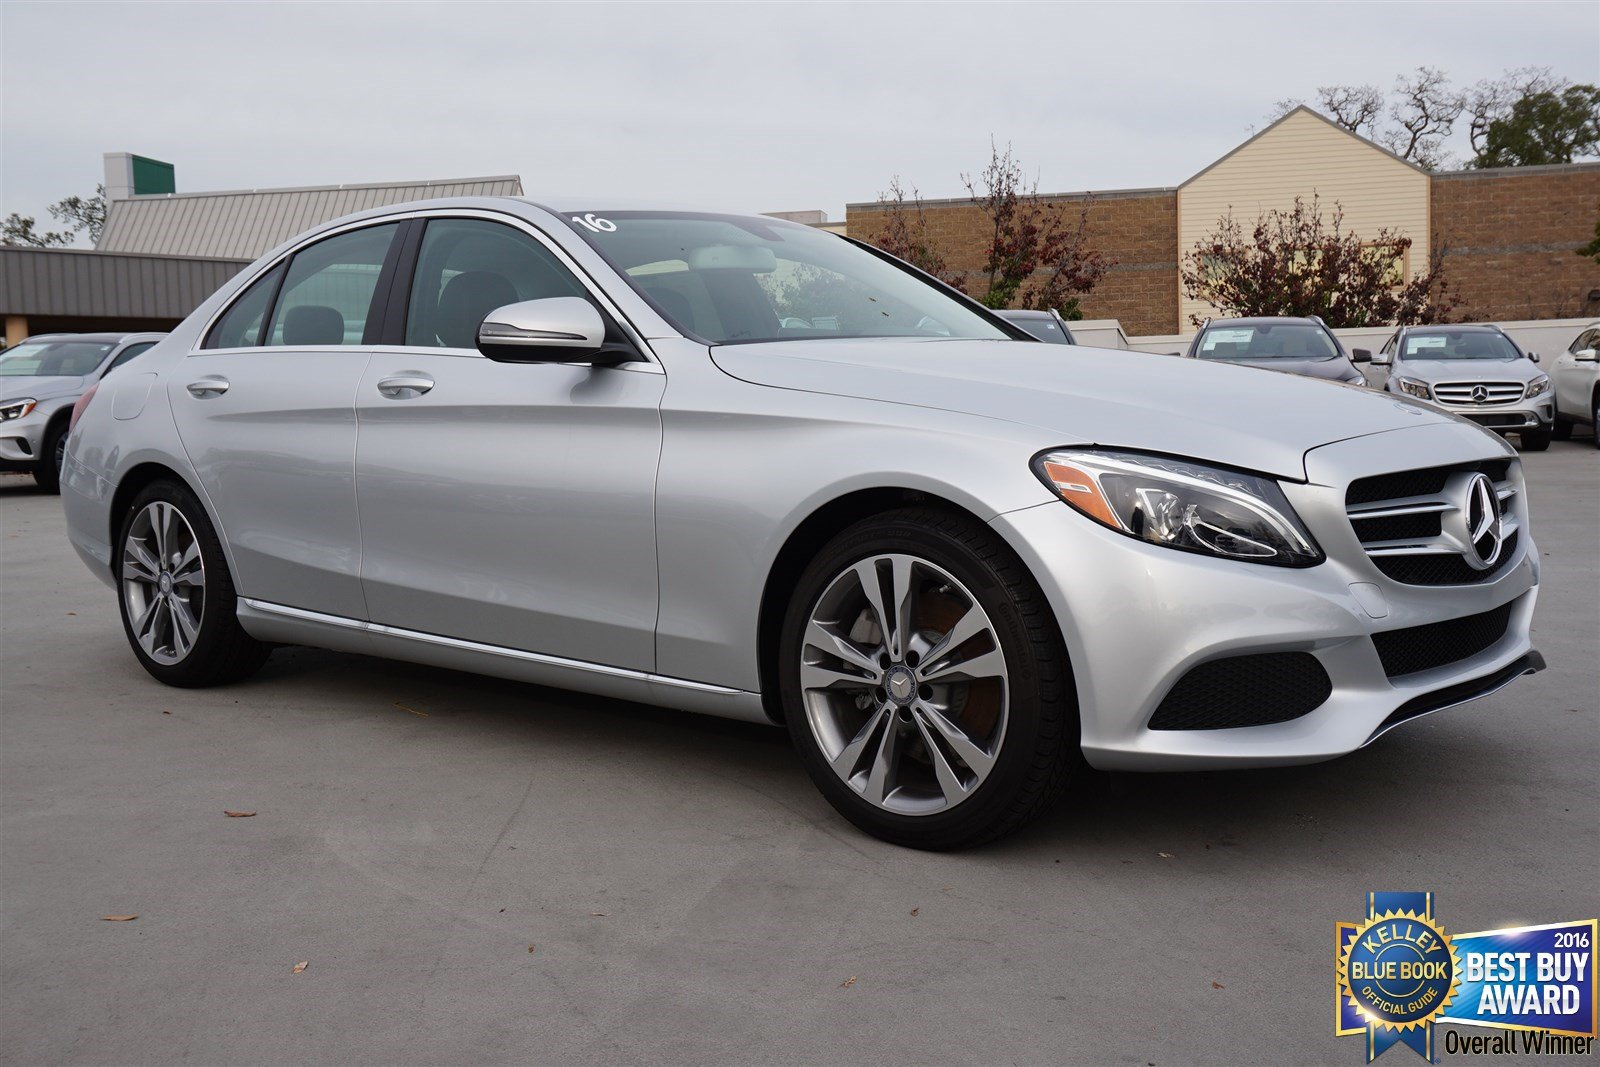 New 2016 mercedes benz c class c300 sedan in rocklin for Mercedes benz rocklin service